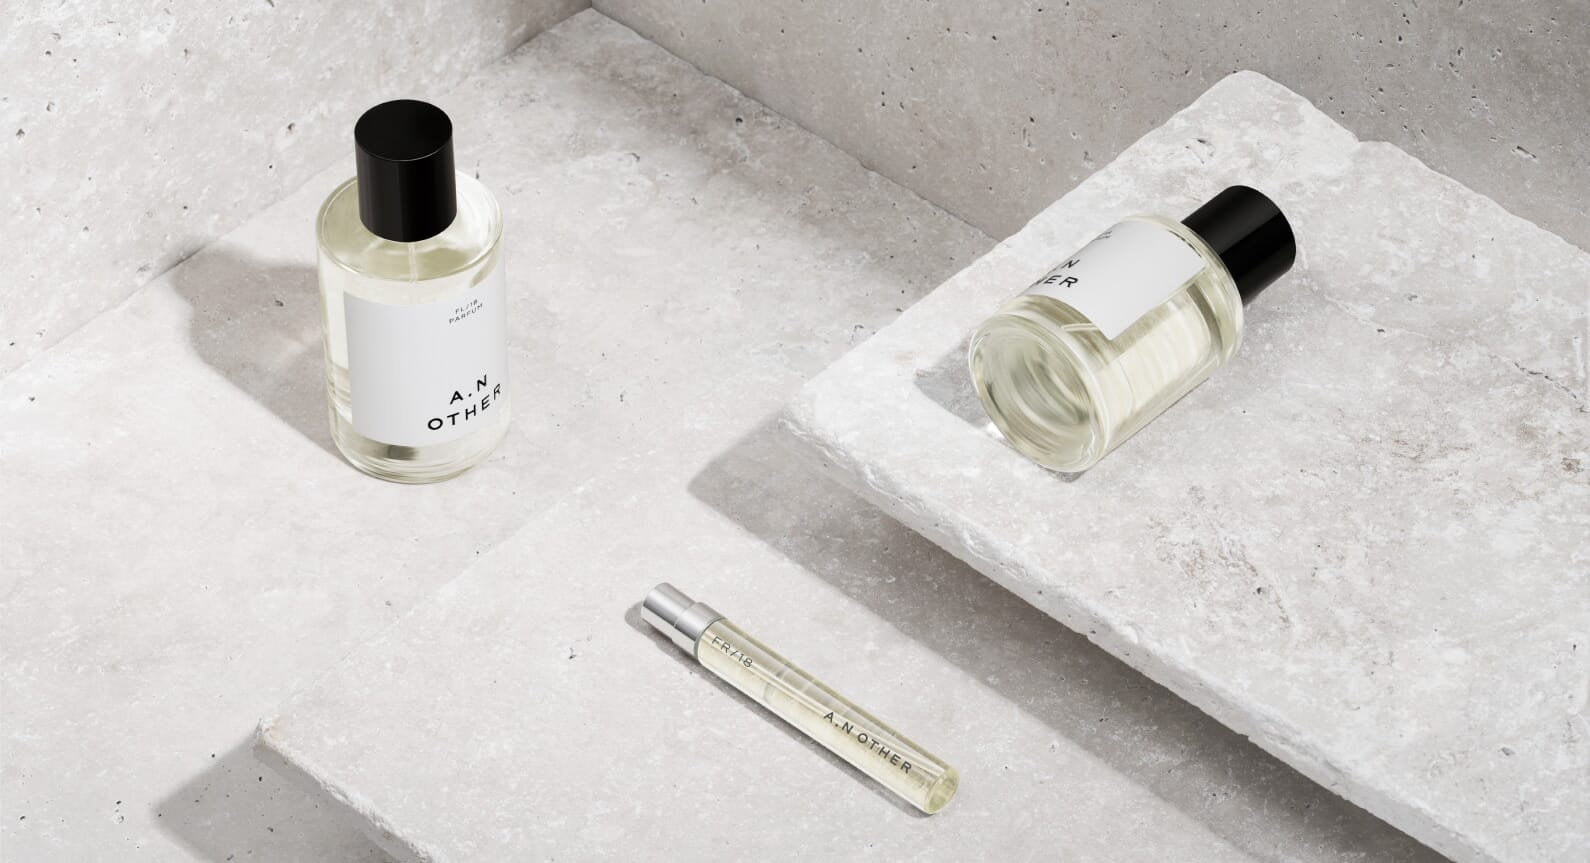 A.N.OTHER: The New Perfumer Transforming The Fragrance Industry